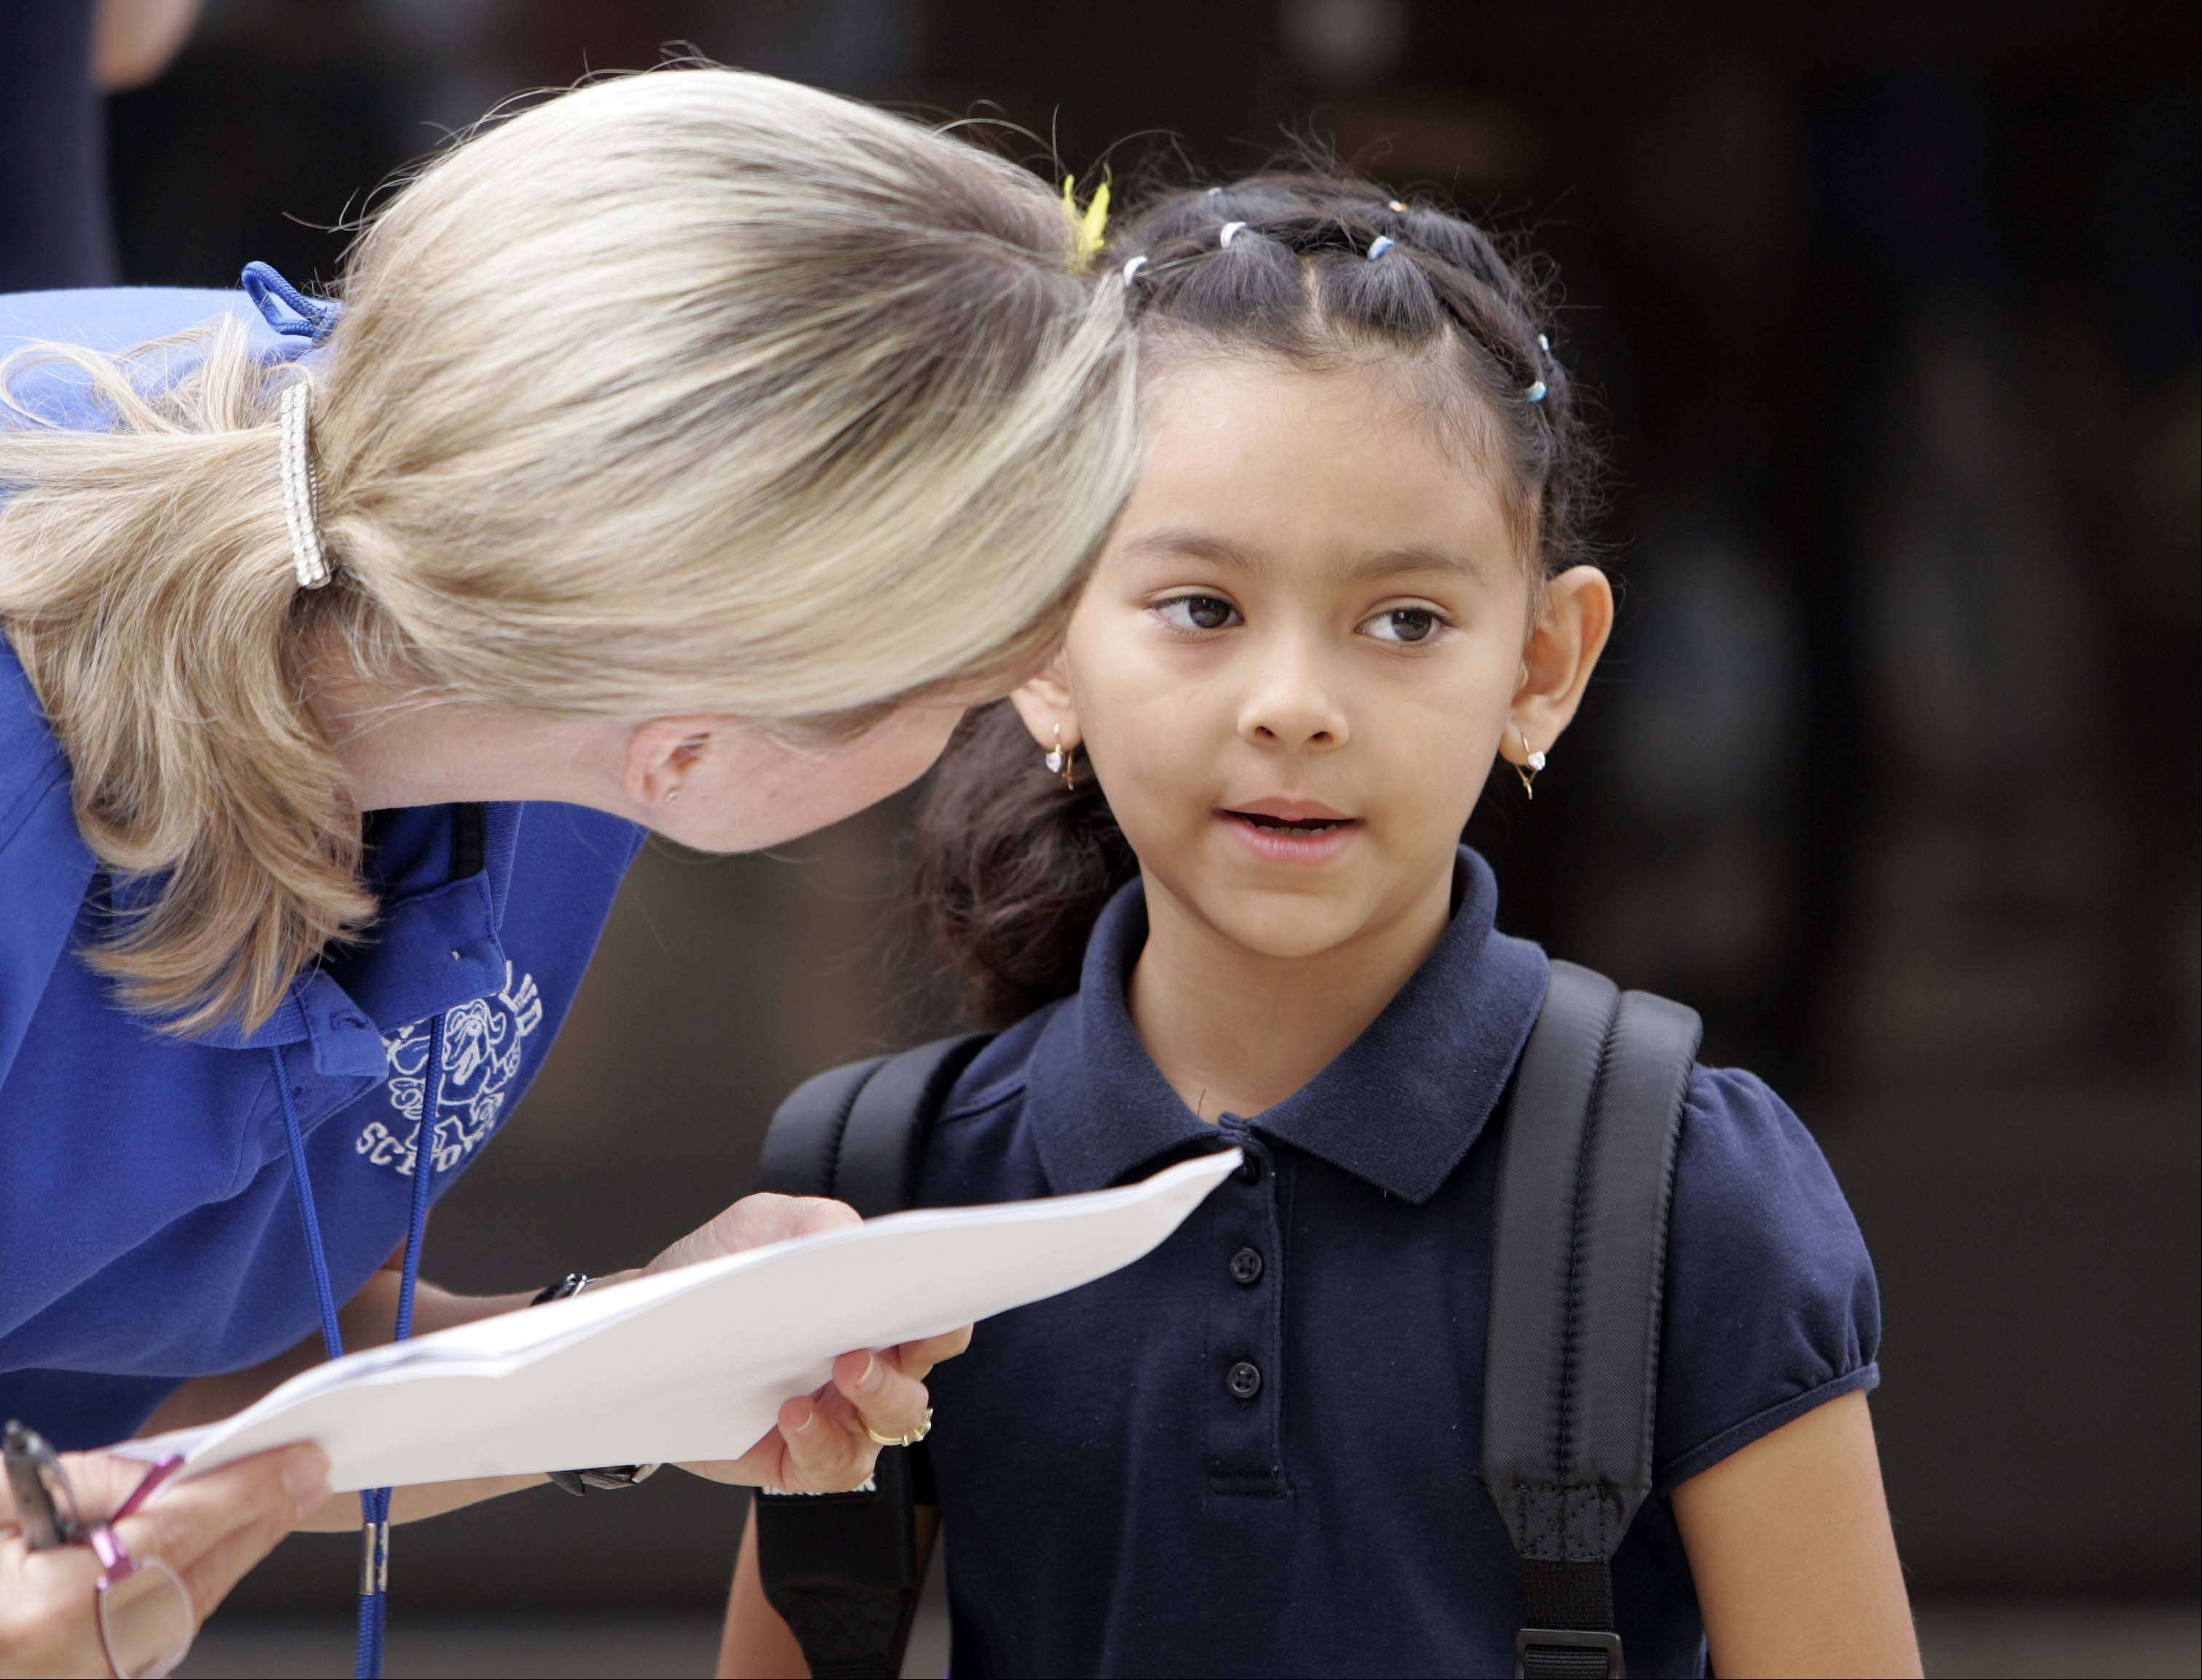 Six-year-old first grade student America Arendondo gets some help finding her class from Lisa Mercado on the first day of school at Highland Elementary School in Elgin Wednesday, August 24, 2011.